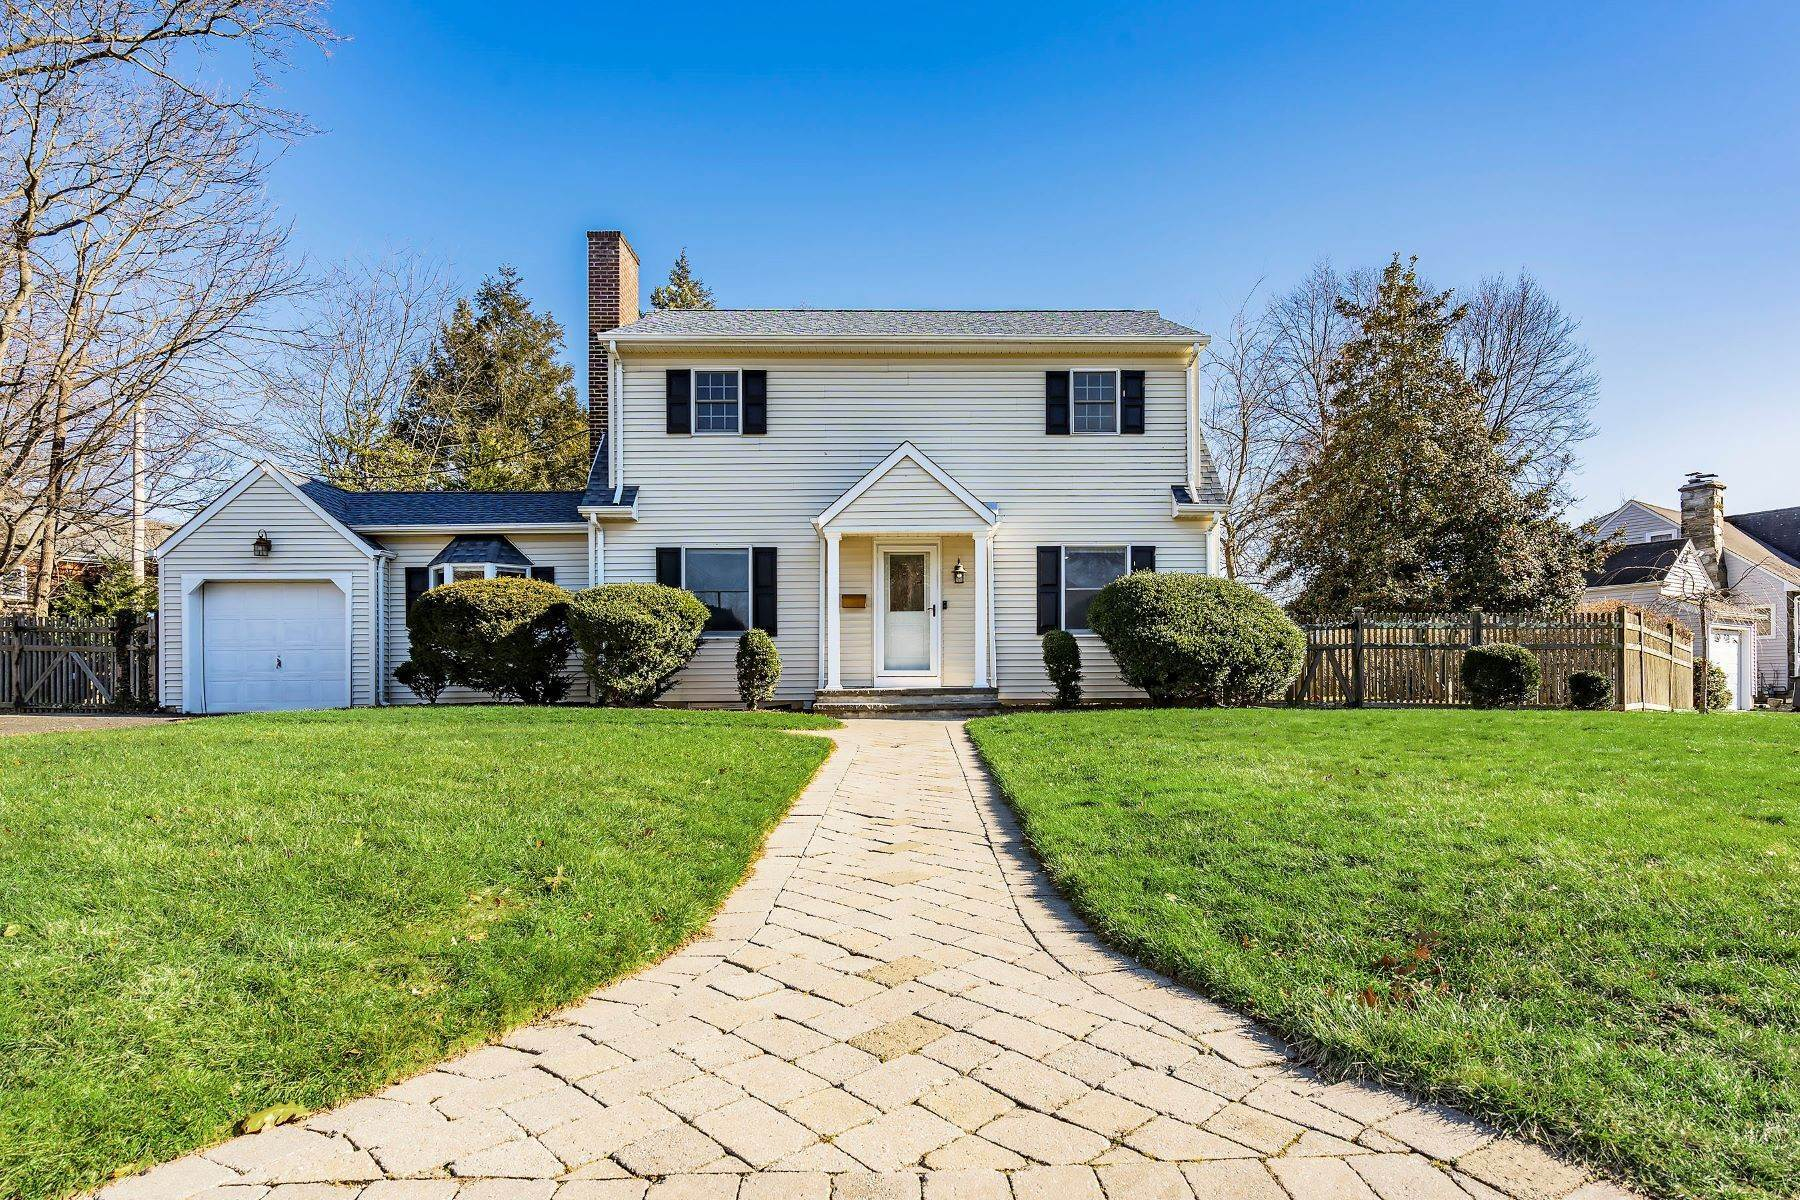 2. Single Family Homes for Sale at Sunnycrest Neighborhood 16 Carlile Terrace Little Silver, New Jersey 07739 United States